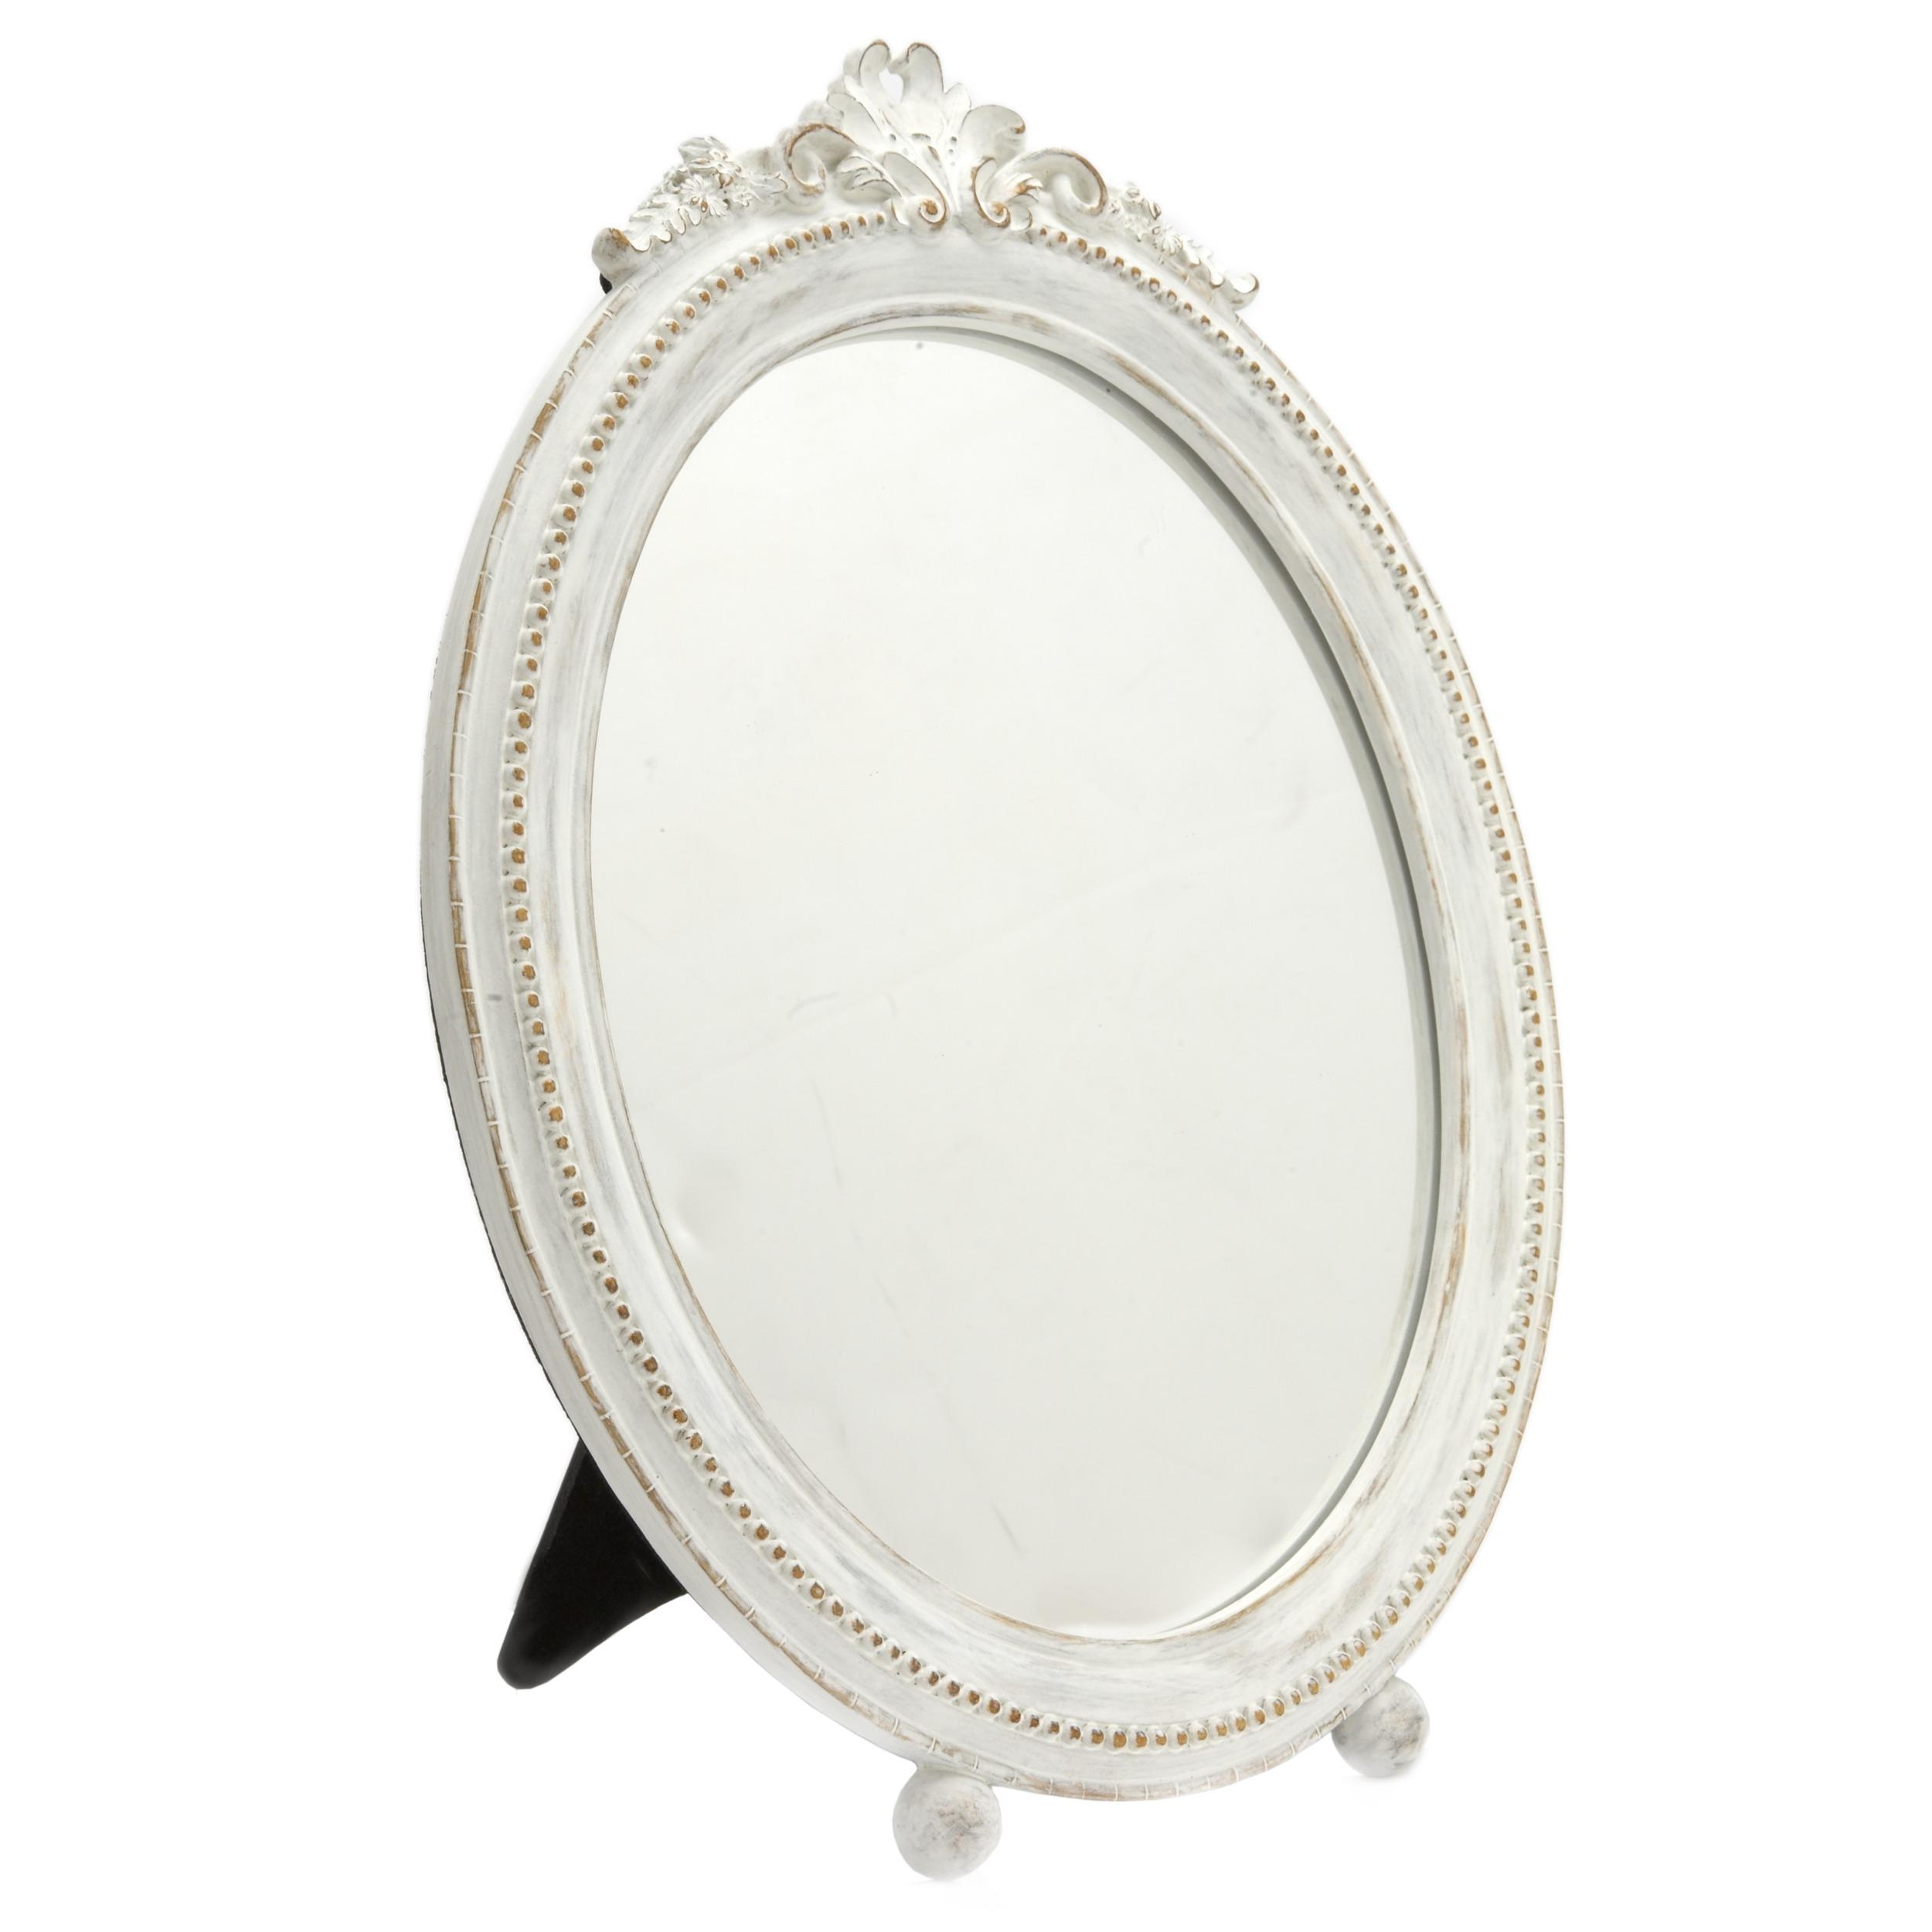 Wonderful Table Mirrors For Wedding And Party Centerpieces Round With Regard To Free Standing Table Mirror (Photo 15 of 20)